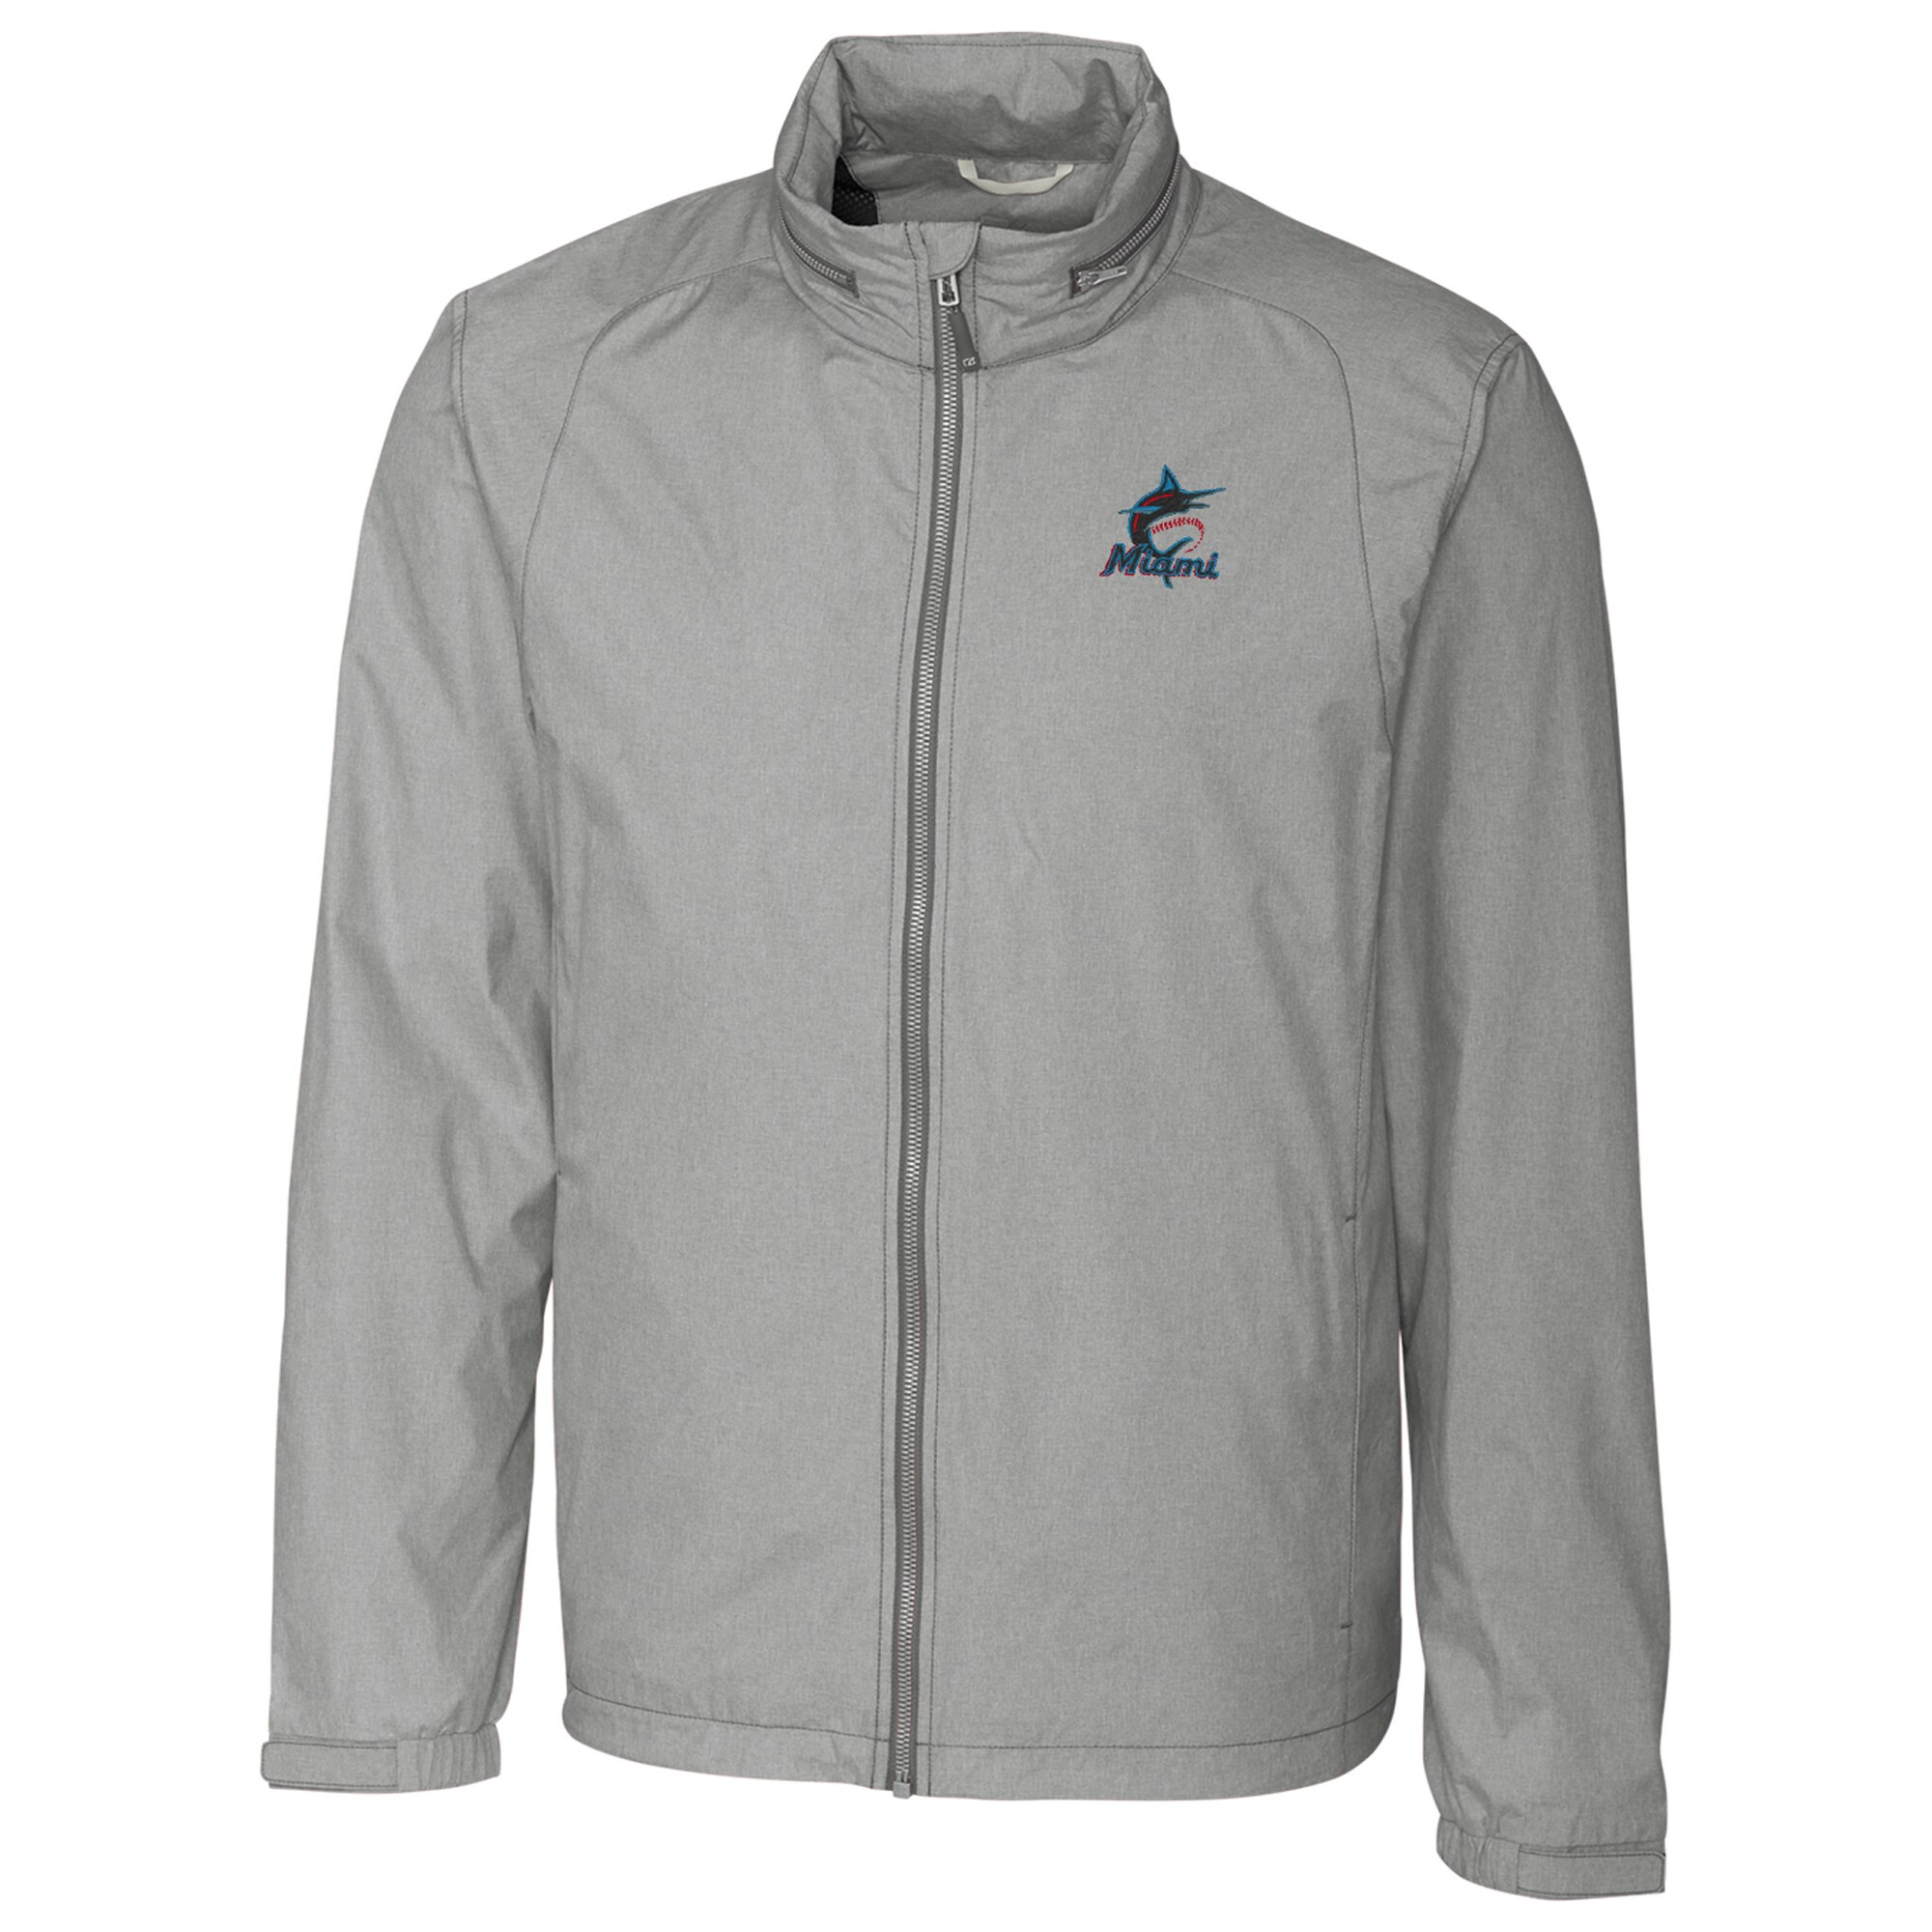 Miami Marlins Cutter & Buck Panoramic Packable Full-Zip Jacket - Heather Gray